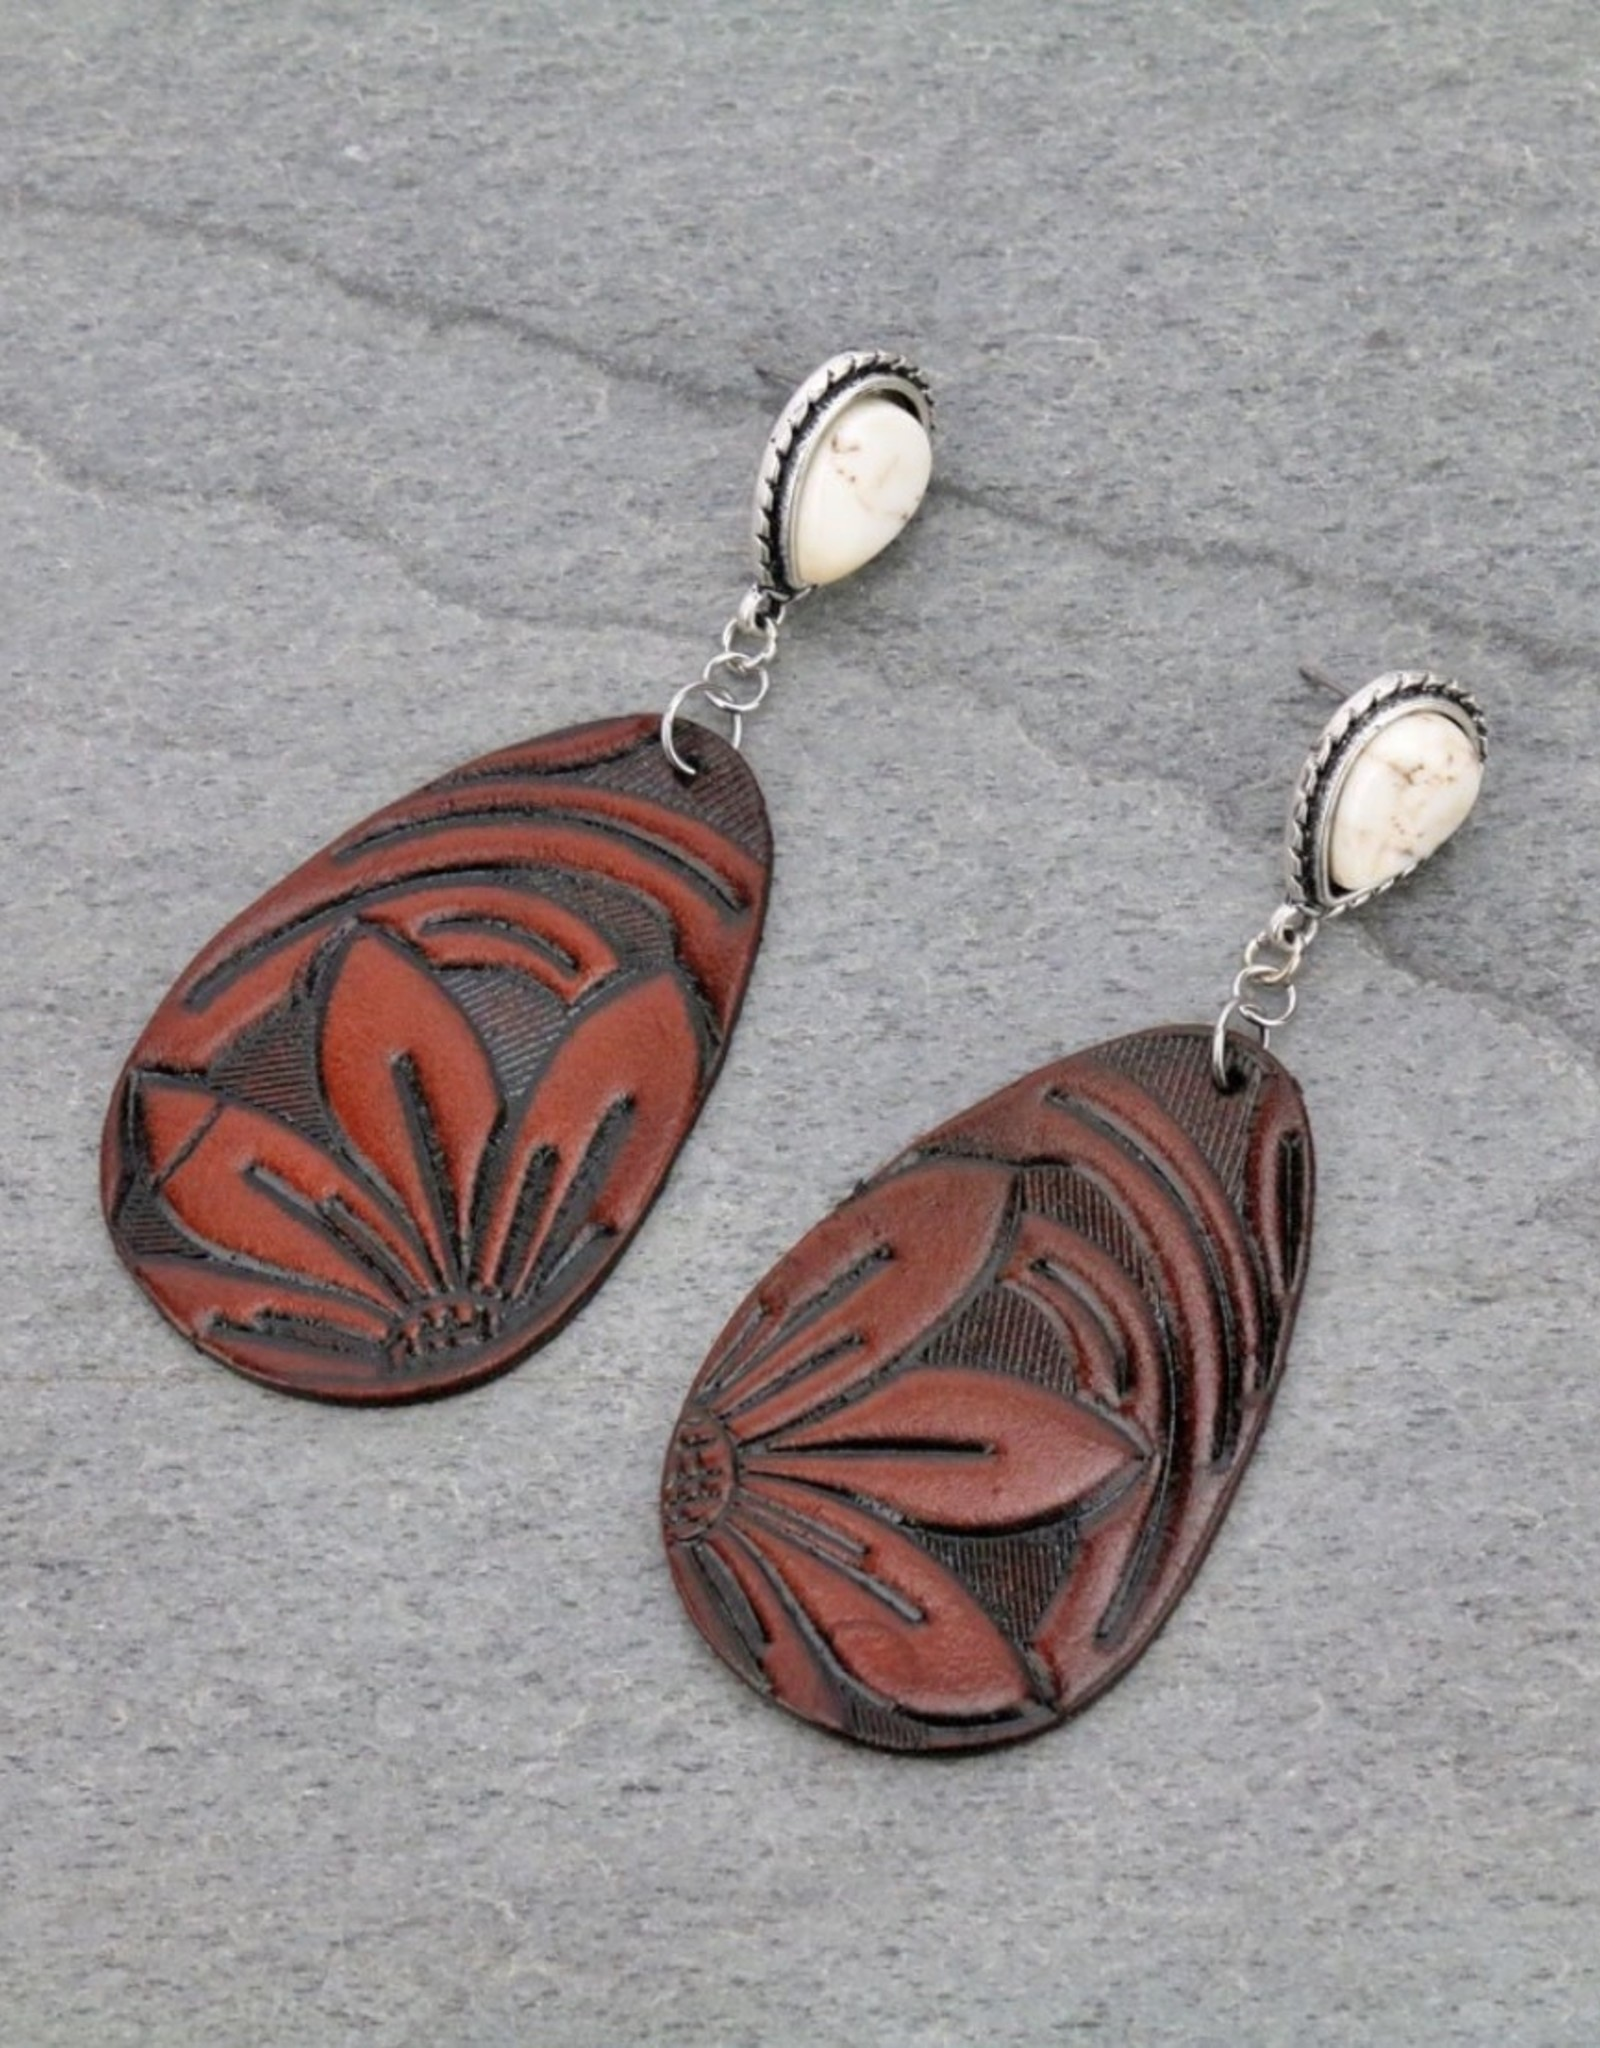 EARRING LEATHER TOOLED FLOWER NATURAL STONE POST